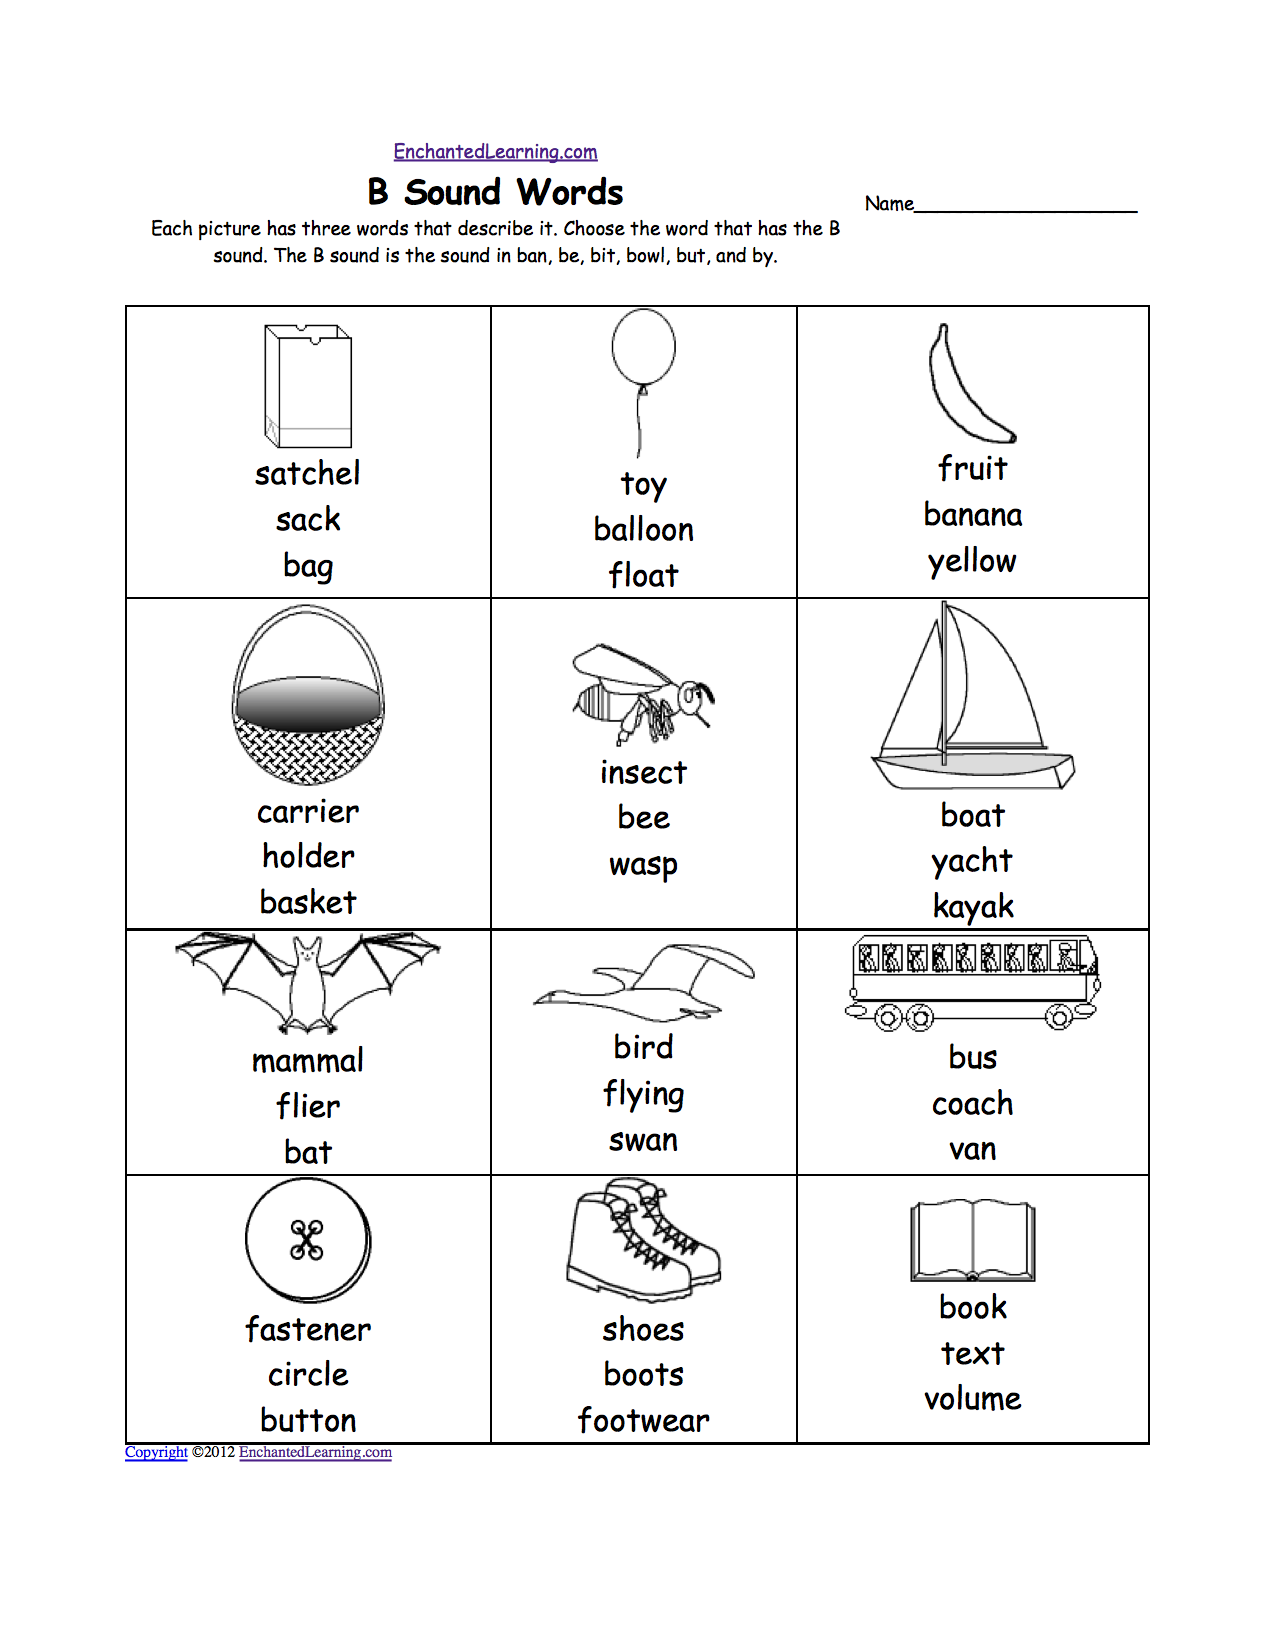 Weirdmailus  Pleasing Phonics Worksheets Multiple Choice Worksheets To Print  With Licious Quotbquot Sound Phonics Worksheet Multiple Choice Each Picture Has Three Words That Describe It Choose The Word That Has A Quotbquot Sound The Quotbquot Sound Is The Sound  With Beauteous Goal Setting Worksheets For Students Also Probability And Chance Worksheets In Addition Writing Numbers In Words Worksheet And Setting And Character Worksheets As Well As Fraction Of A Number Worksheets Additionally Adding  Worksheets From Enchantedlearningcom With Weirdmailus  Licious Phonics Worksheets Multiple Choice Worksheets To Print  With Beauteous Quotbquot Sound Phonics Worksheet Multiple Choice Each Picture Has Three Words That Describe It Choose The Word That Has A Quotbquot Sound The Quotbquot Sound Is The Sound  And Pleasing Goal Setting Worksheets For Students Also Probability And Chance Worksheets In Addition Writing Numbers In Words Worksheet From Enchantedlearningcom